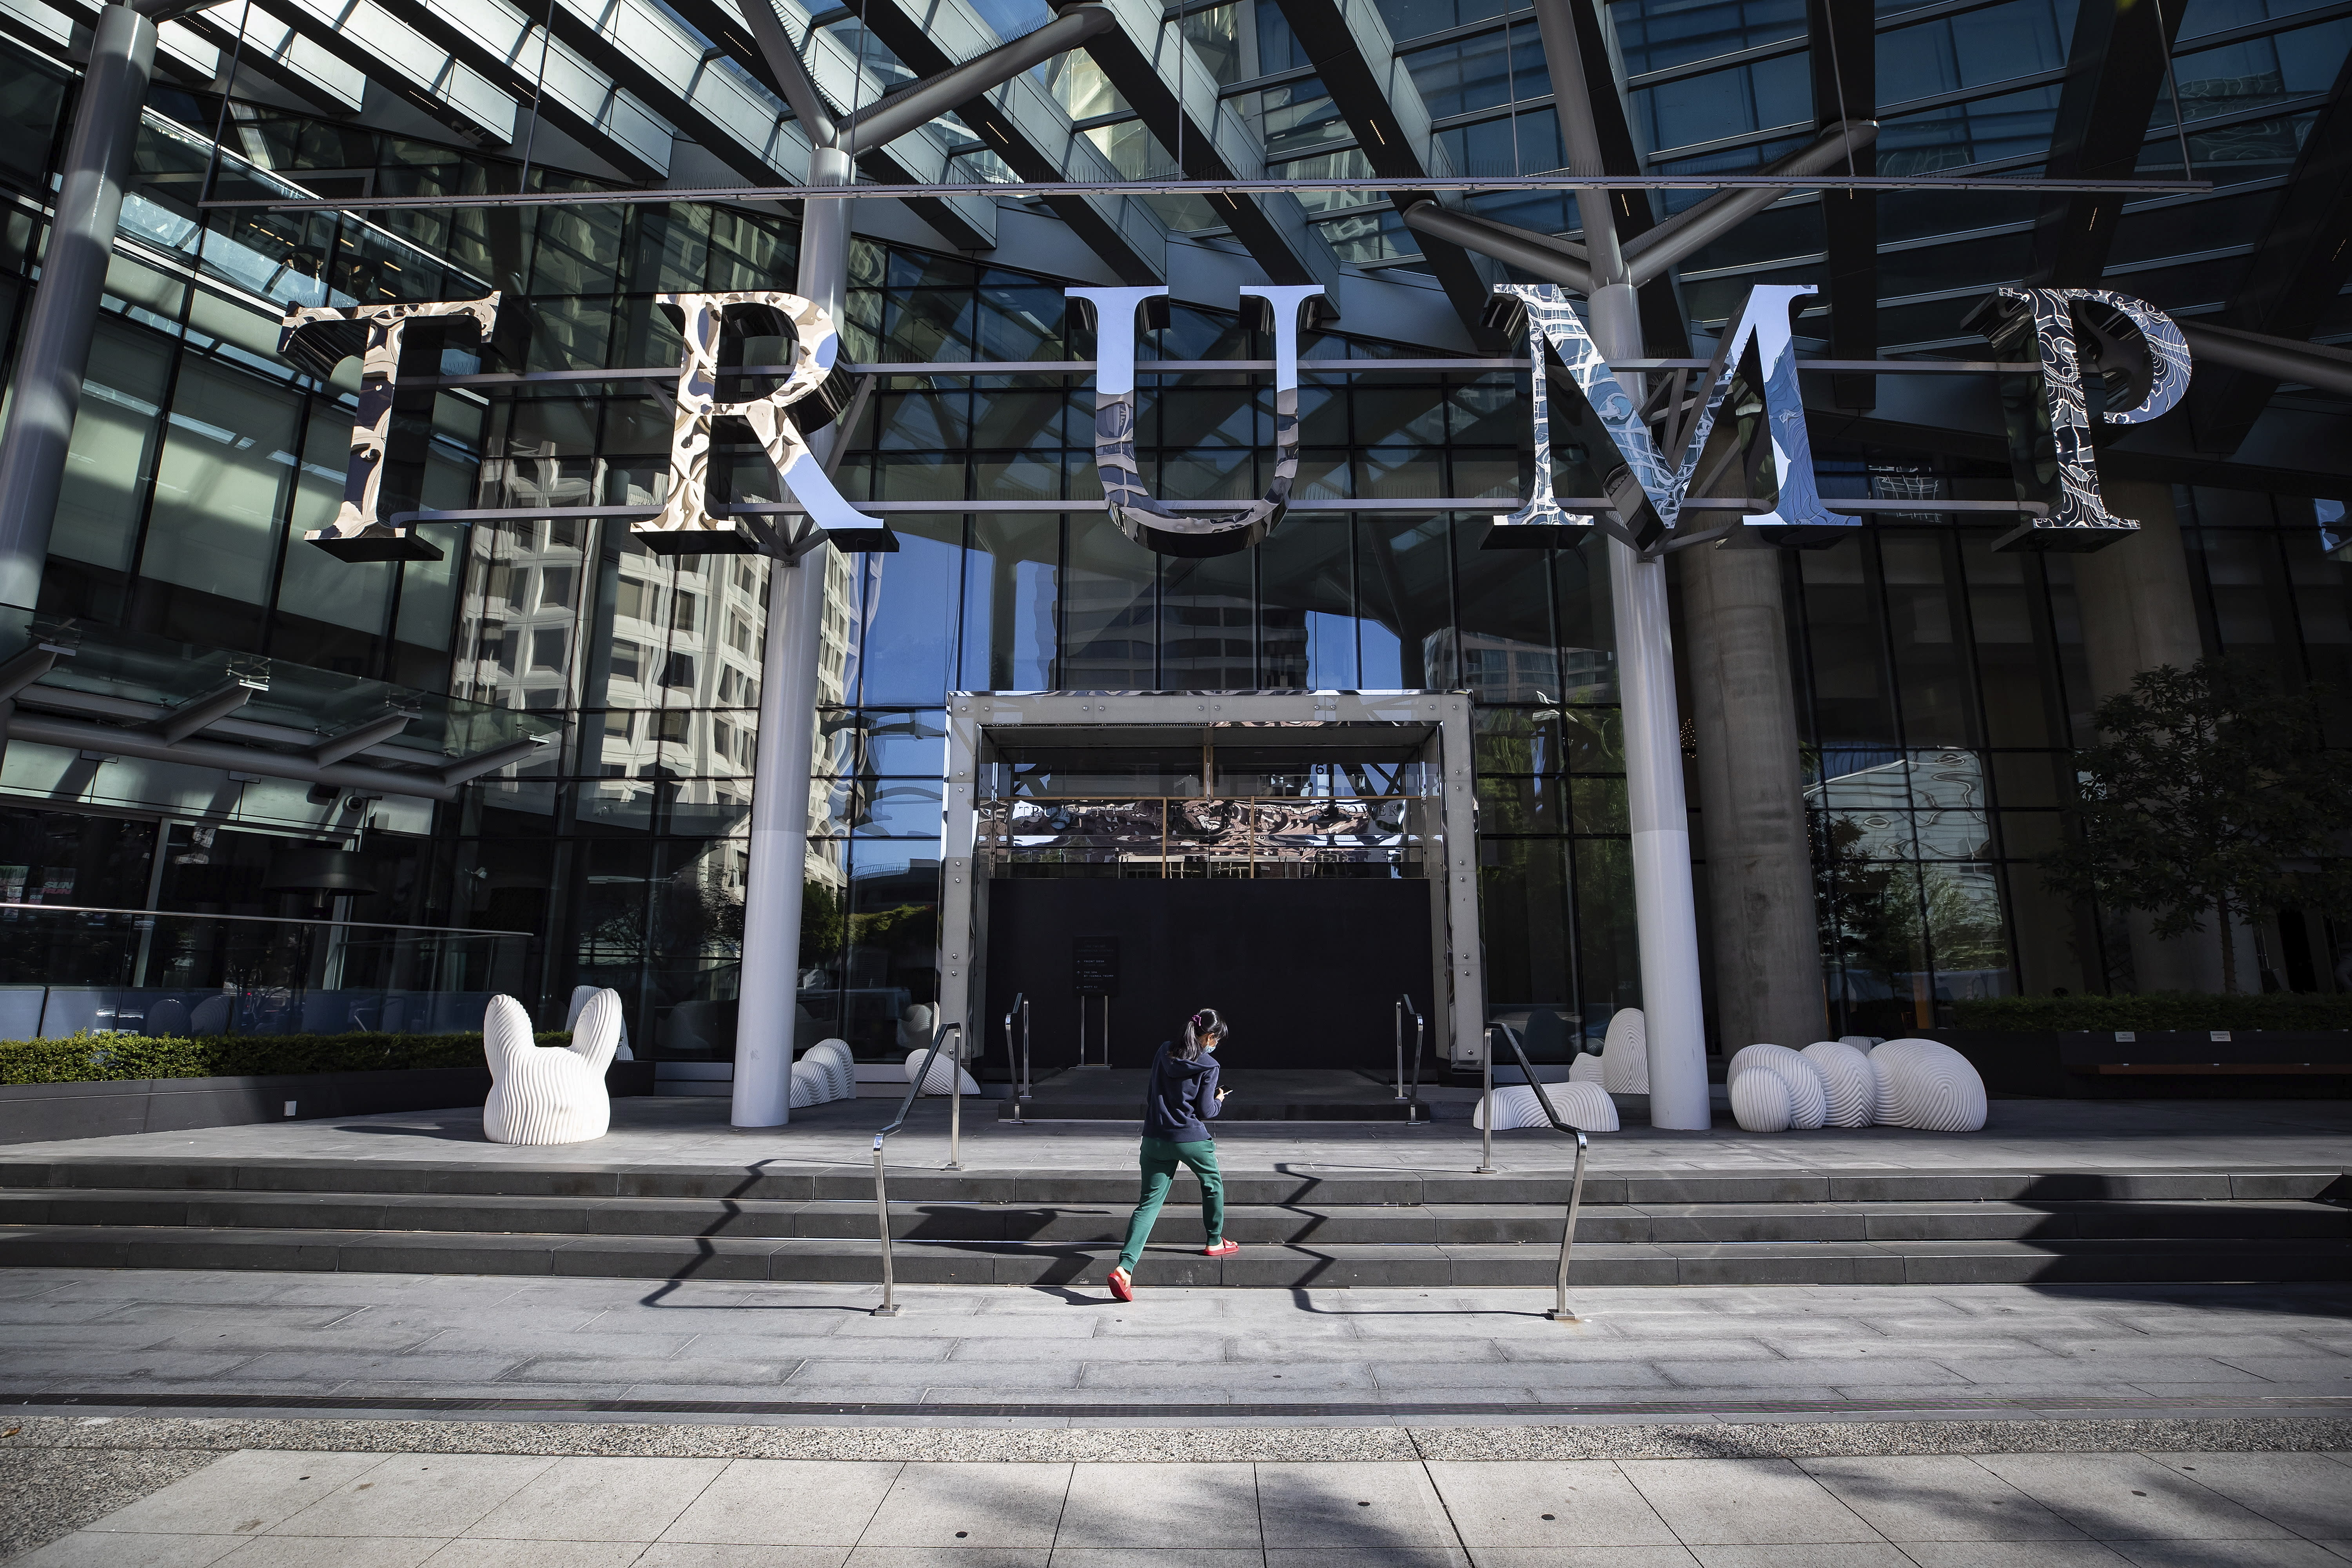 Trump International Hotel in Vancouver Closes Amidst Bankruptcy Filing